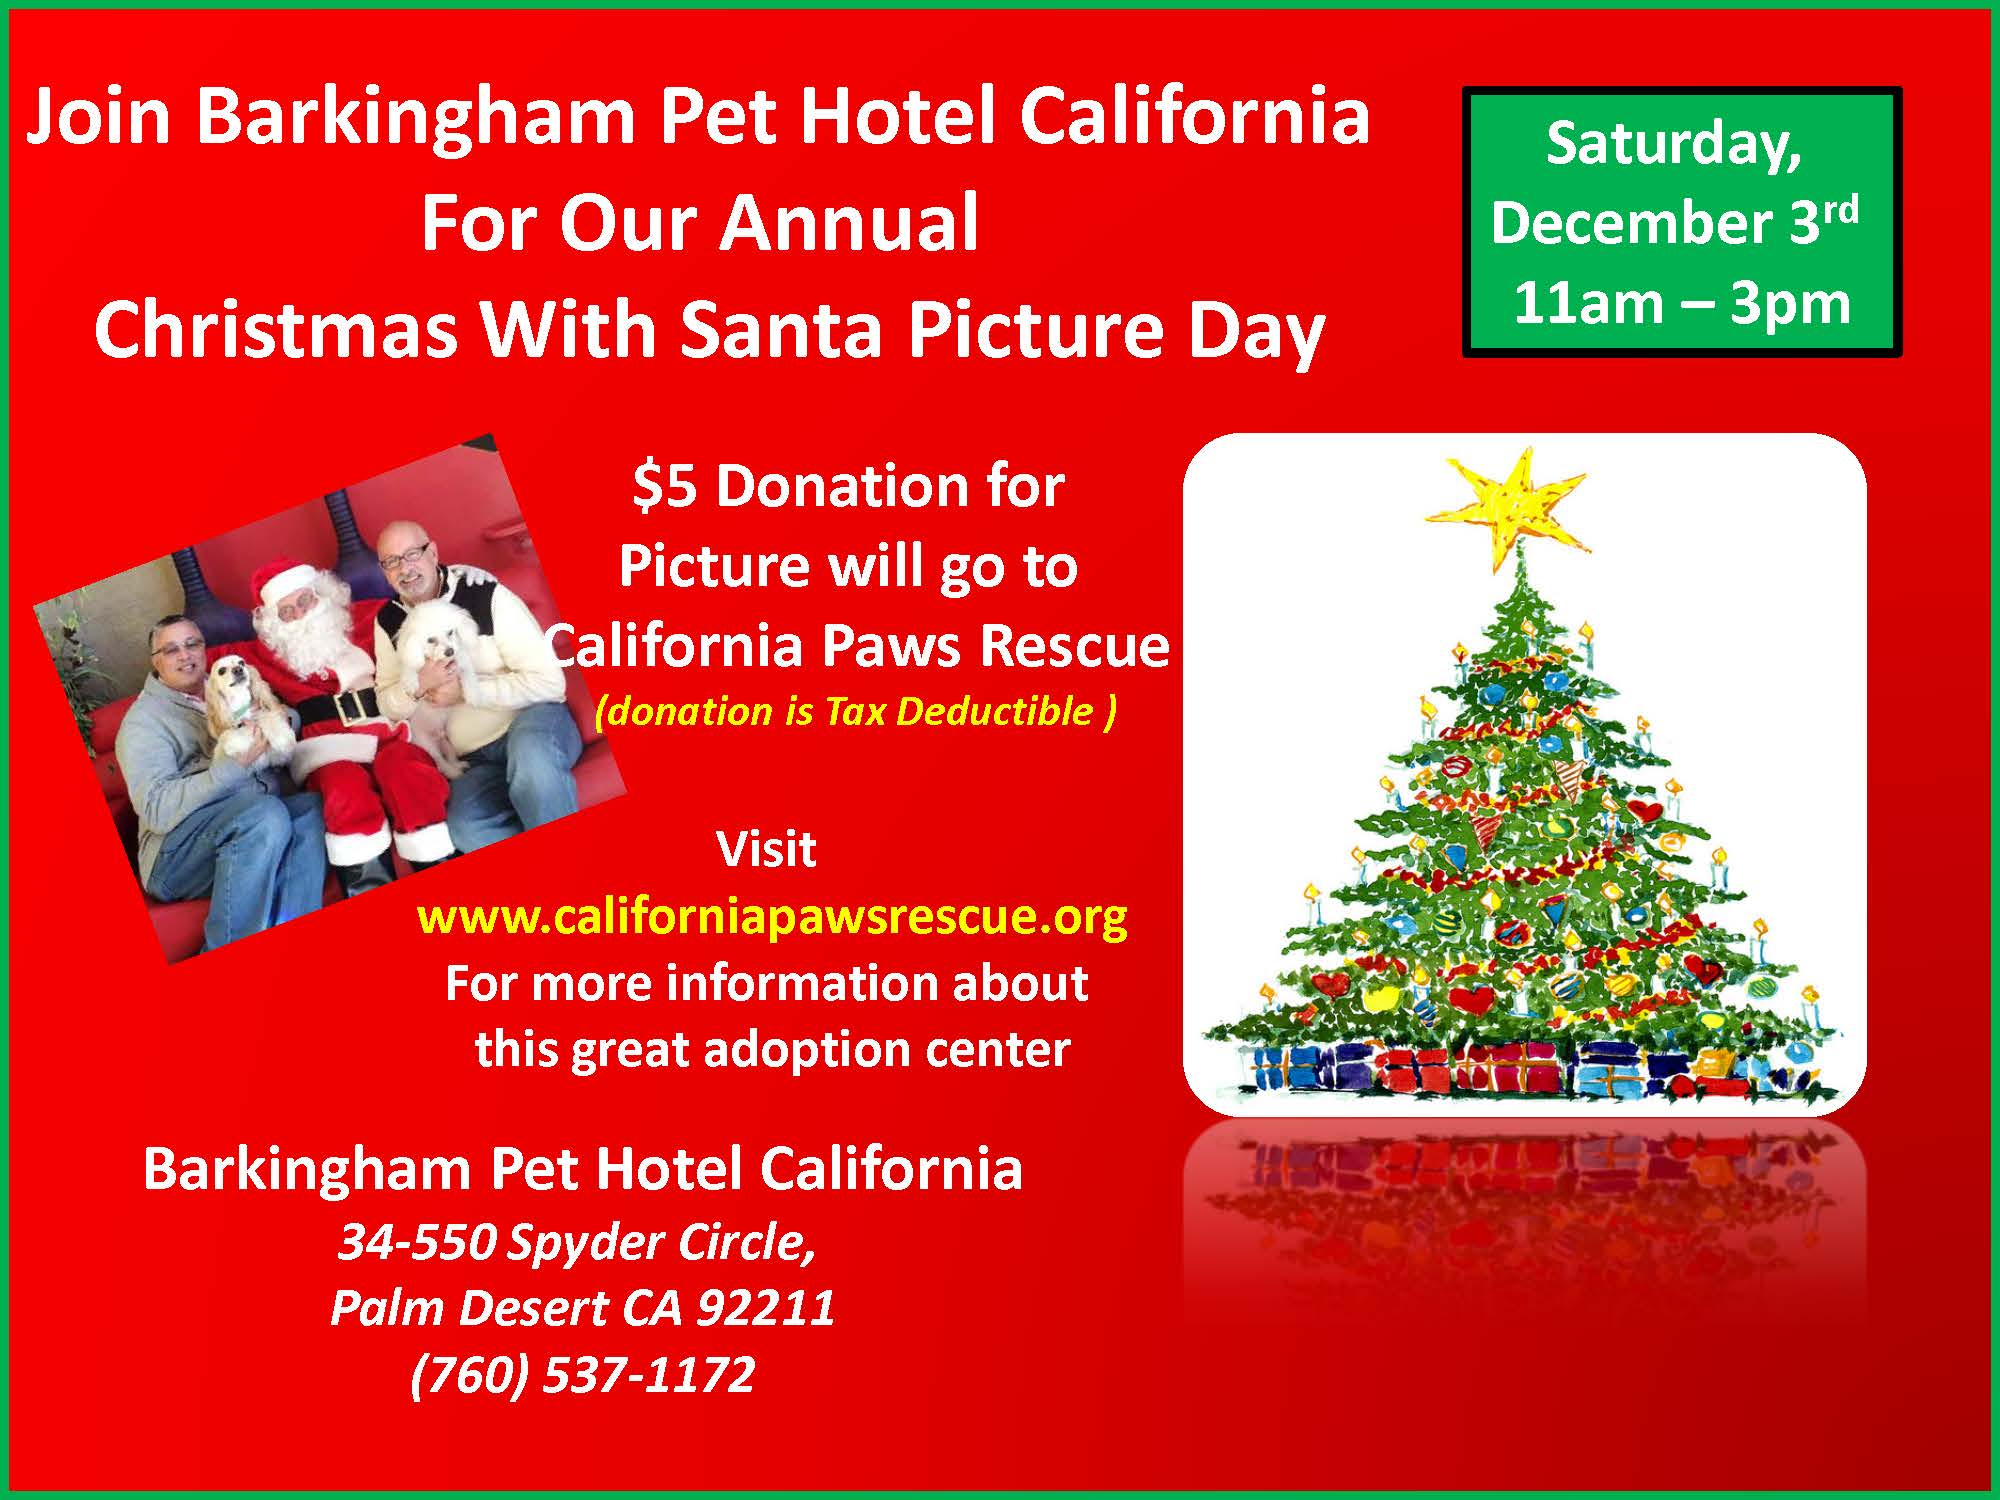 Barkingham pet hotel california coupons near me in palm for Pet hotels near me